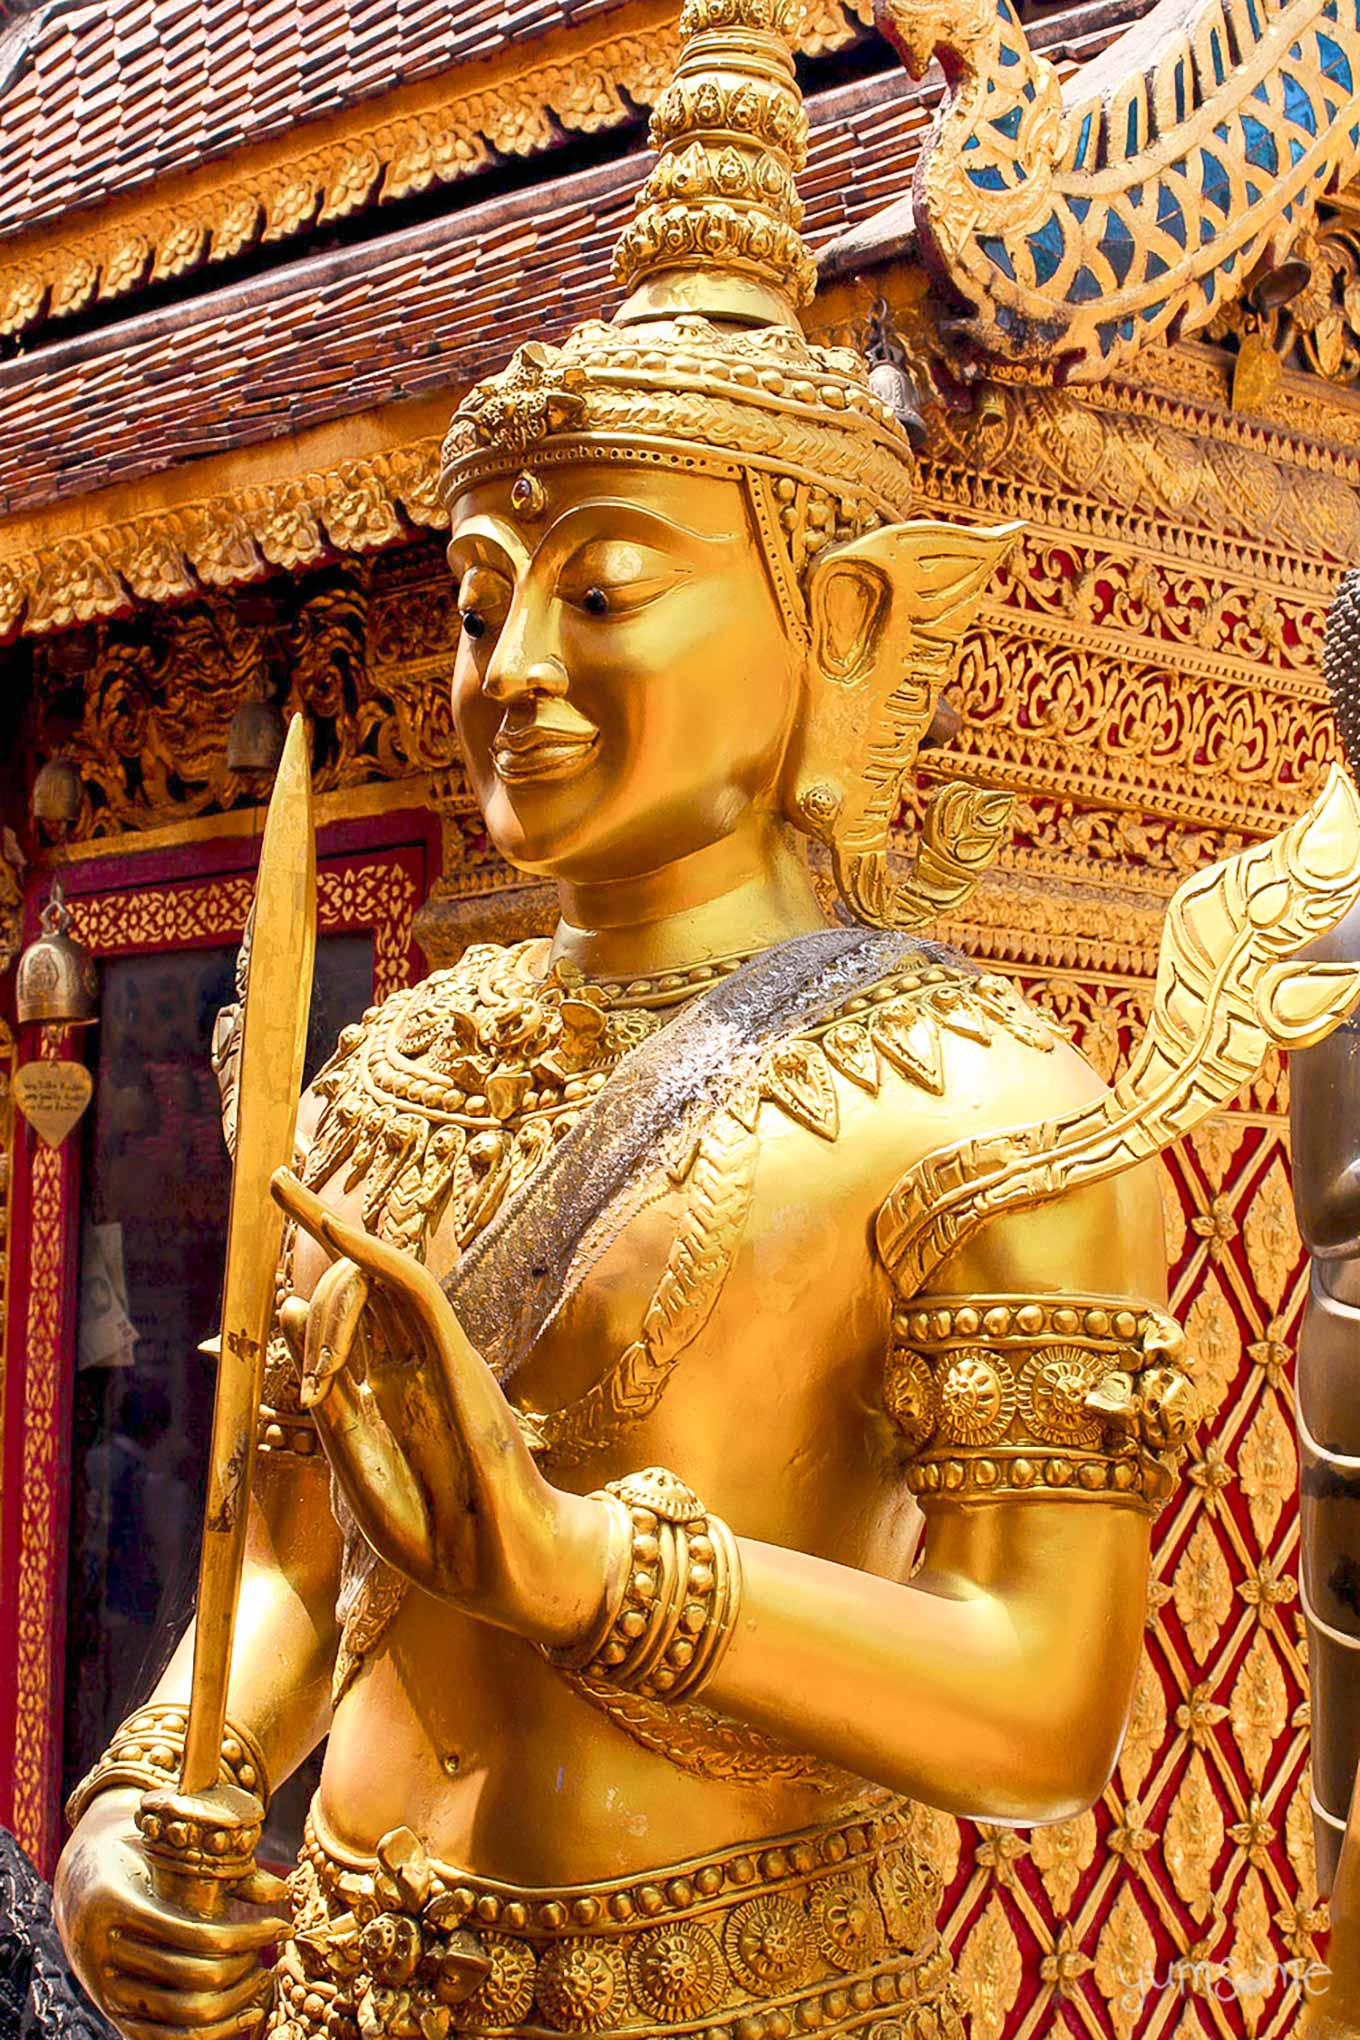 Golden karana mudra Bodhisattva at Wat Phra That Doi Suthep